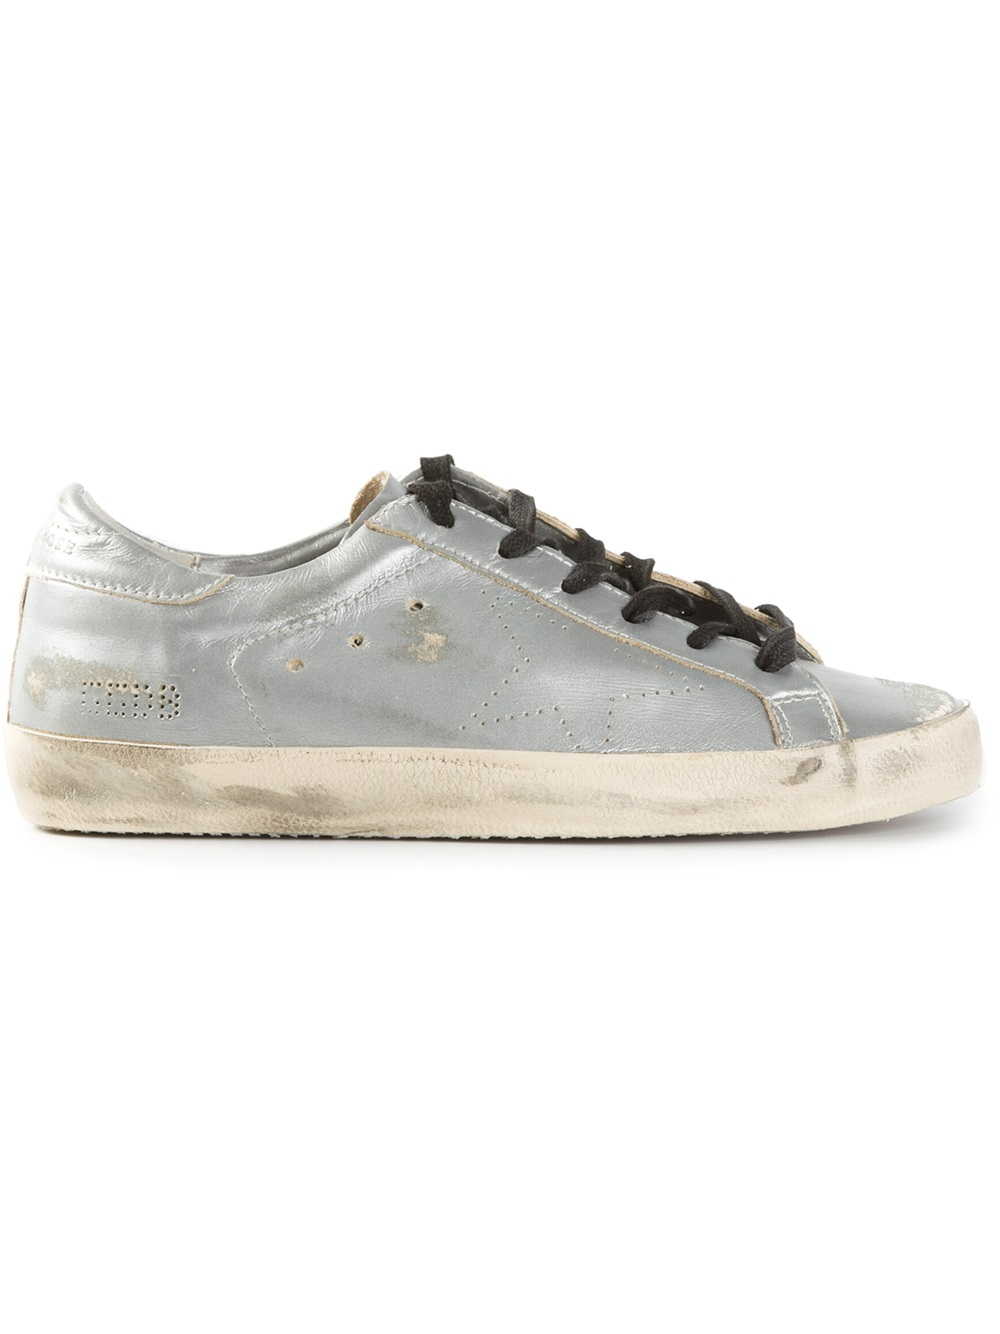 lyst golden goose deluxe brand 39 super star 39 sneakers in metallic. Black Bedroom Furniture Sets. Home Design Ideas